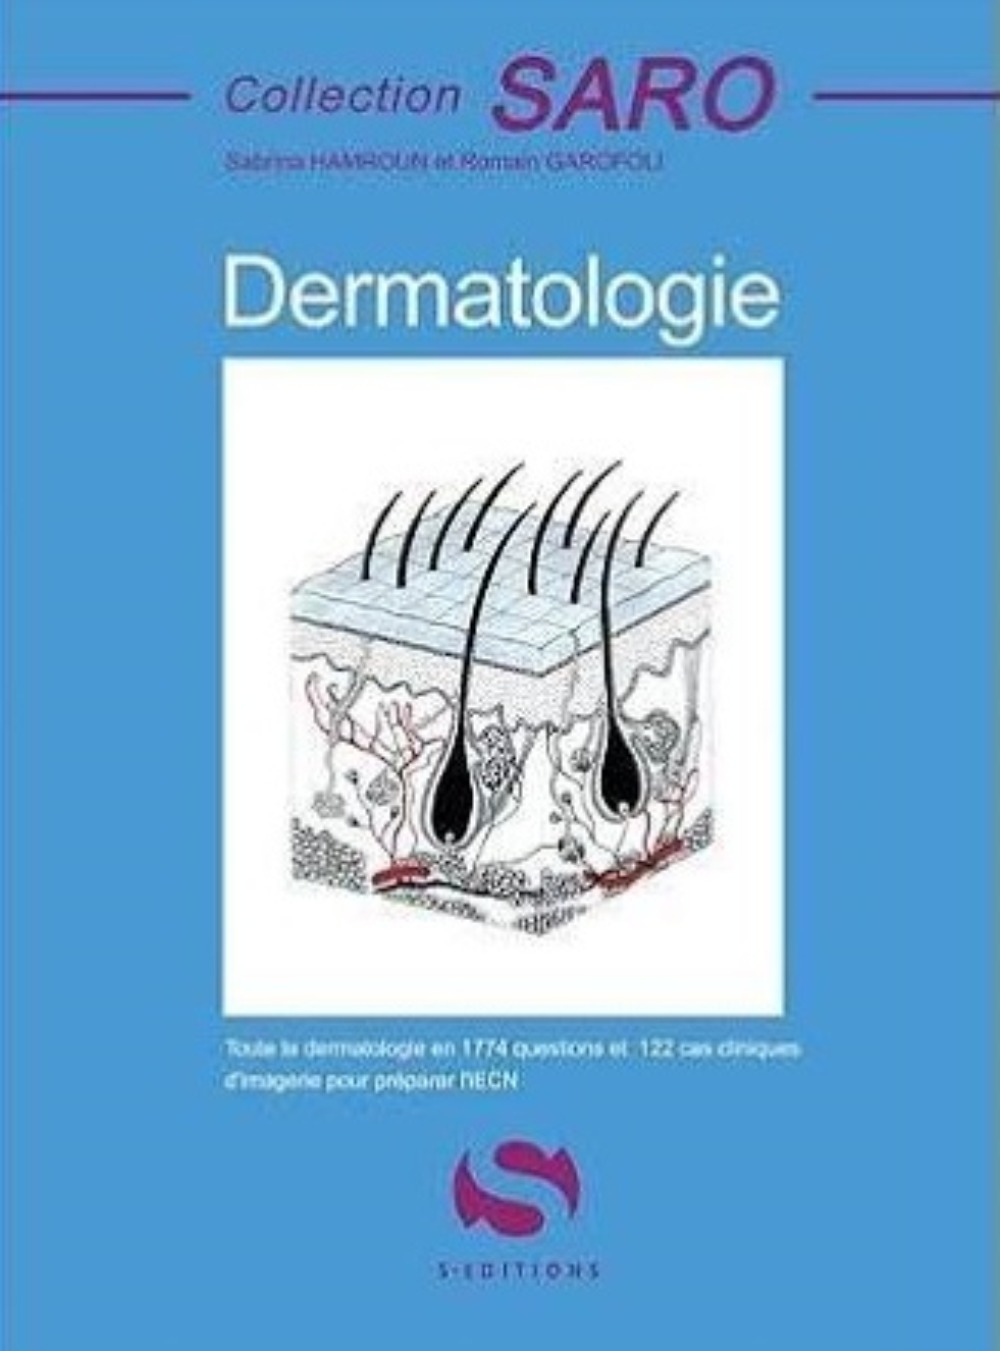 DERMATOLOGIE - COLLECTION SARO